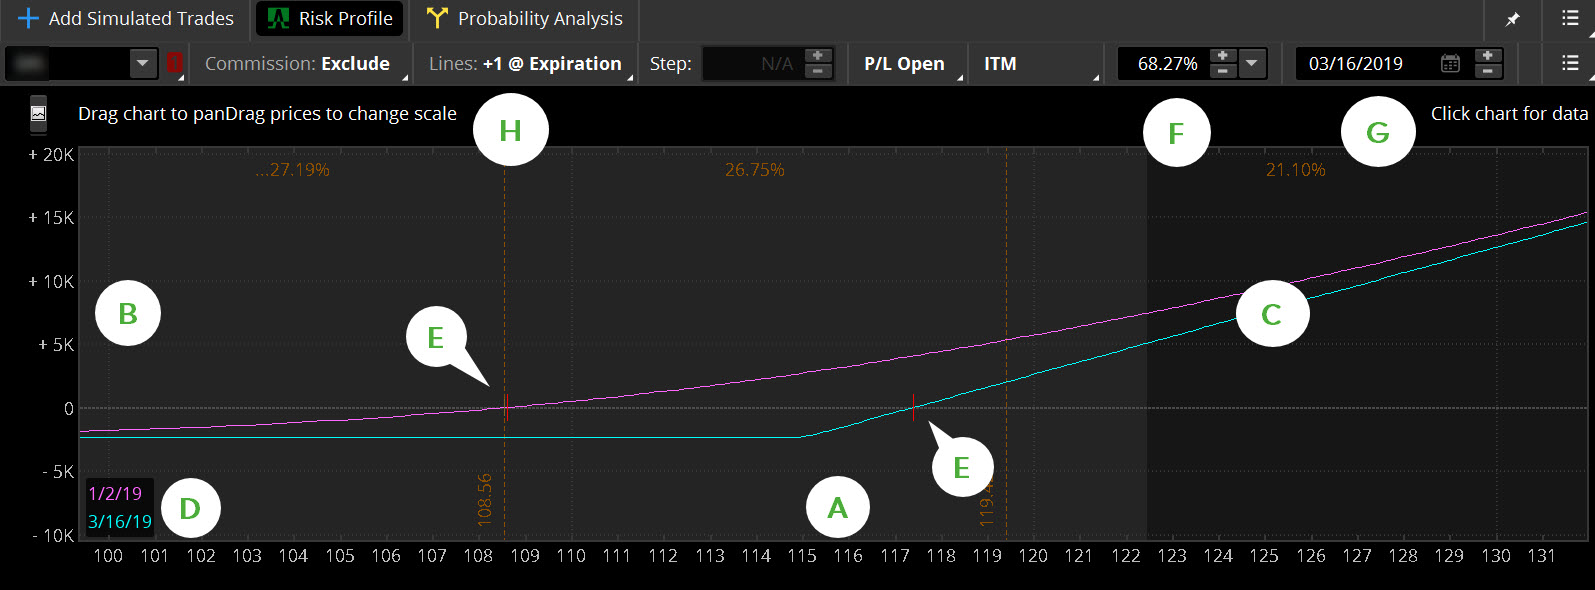 Risk Profile tool for options position